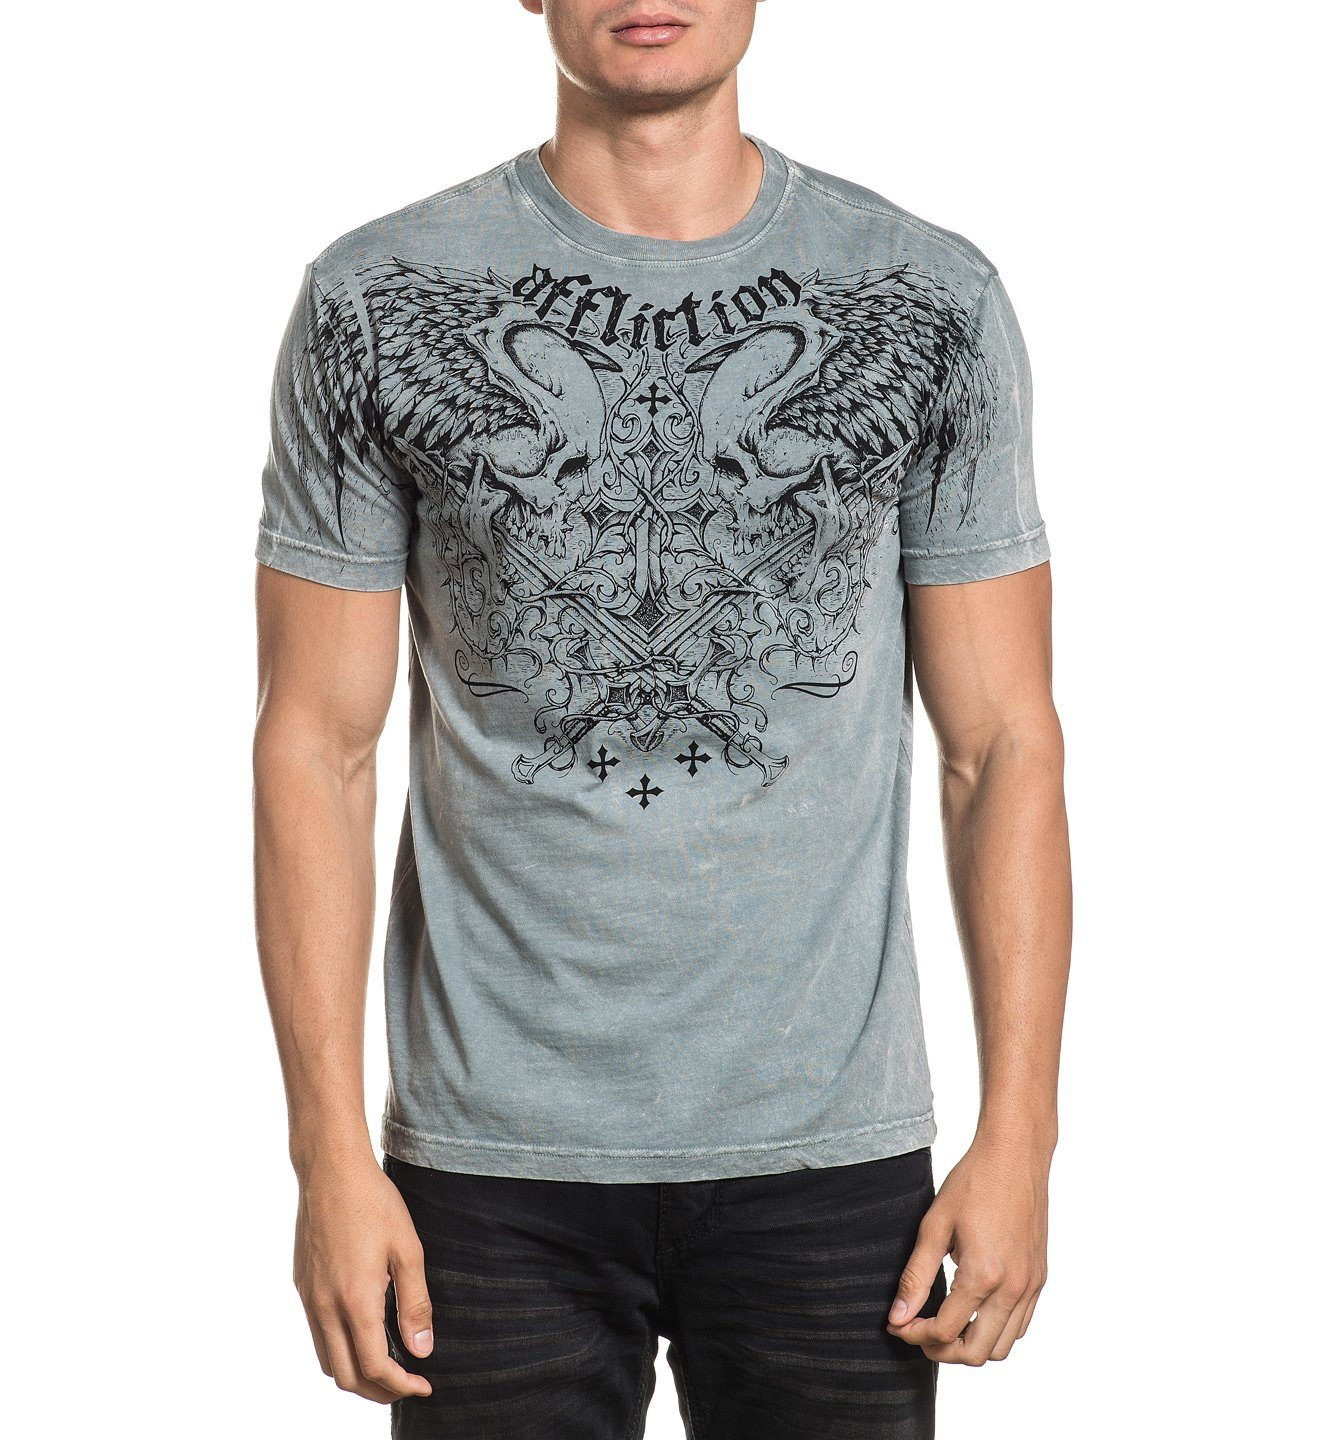 Mens Short Sleeve Tees - Sword Eater